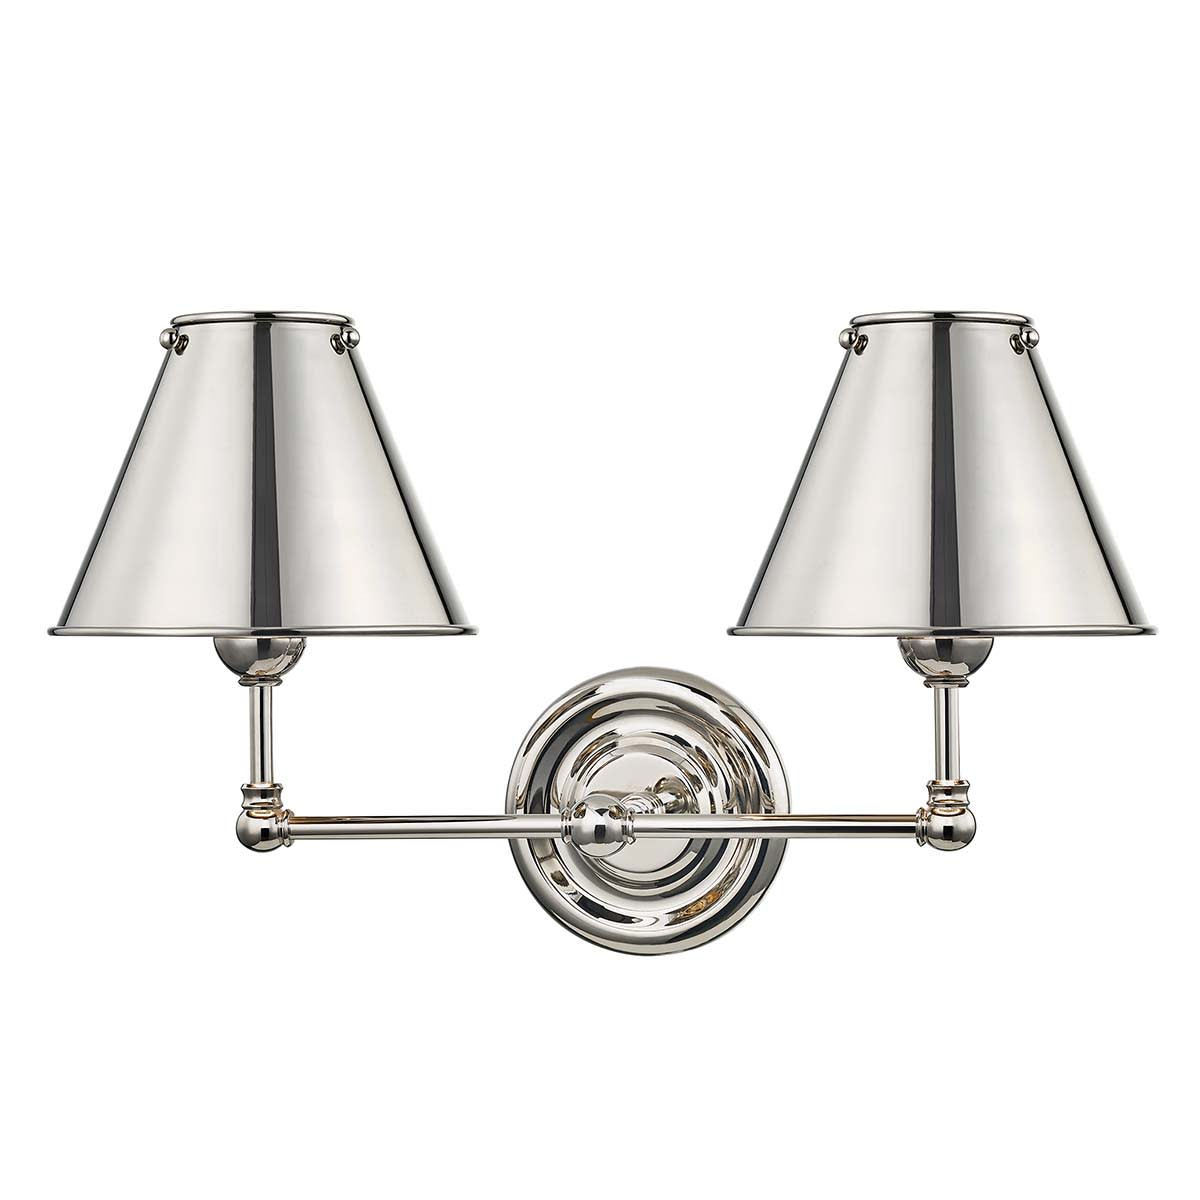 Hudson Valley Lighting Mds102 Agb Ms Aged Brass Classic No 1 2 Light 11 Tall Wall Sconce Faucetdirect Com